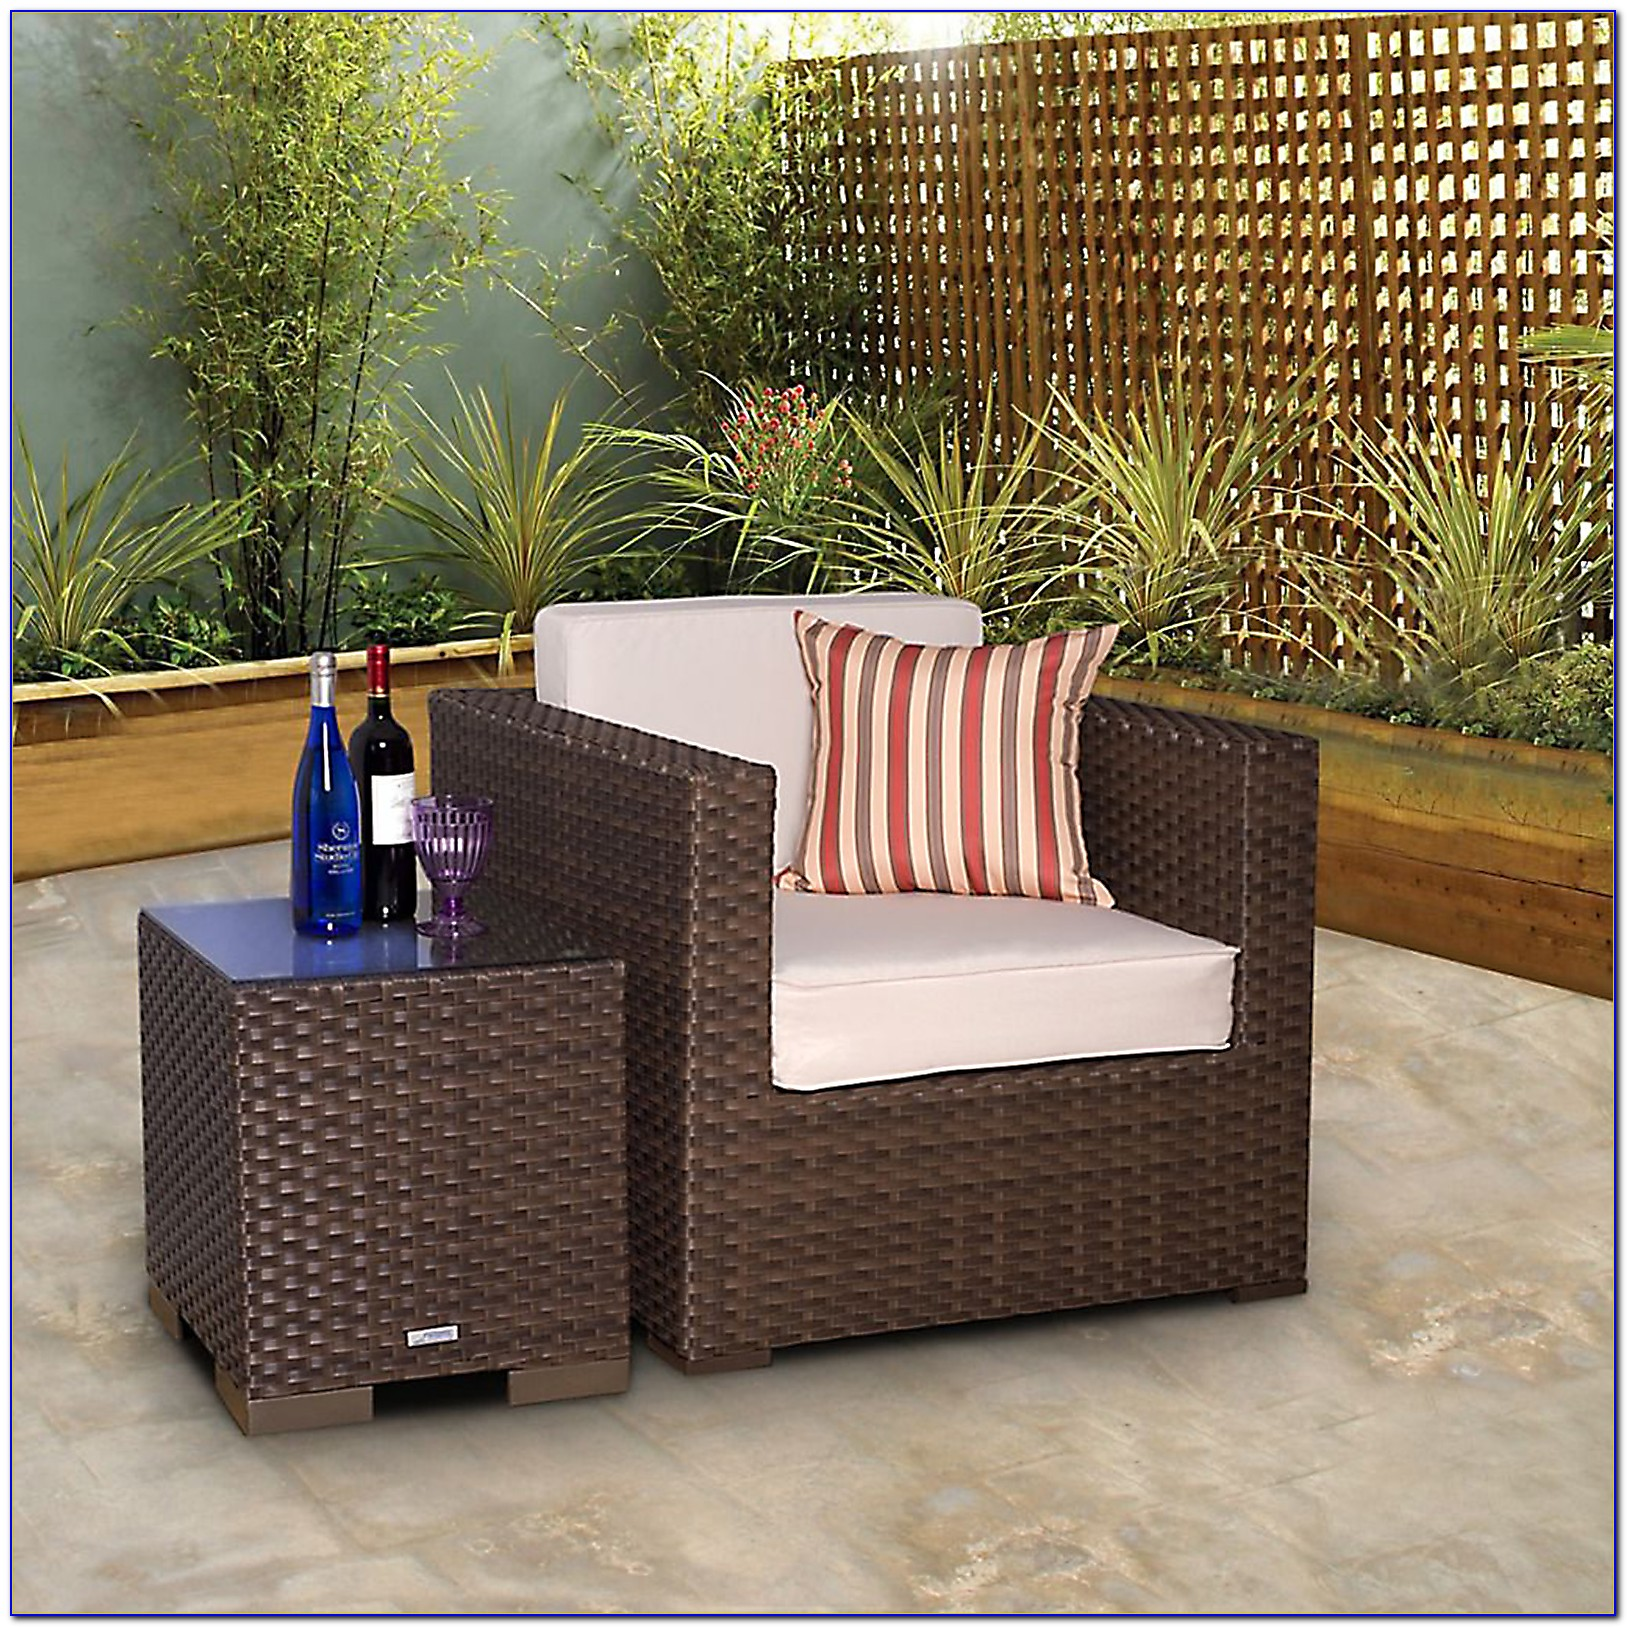 Kmart Patio Furniture Umbrella